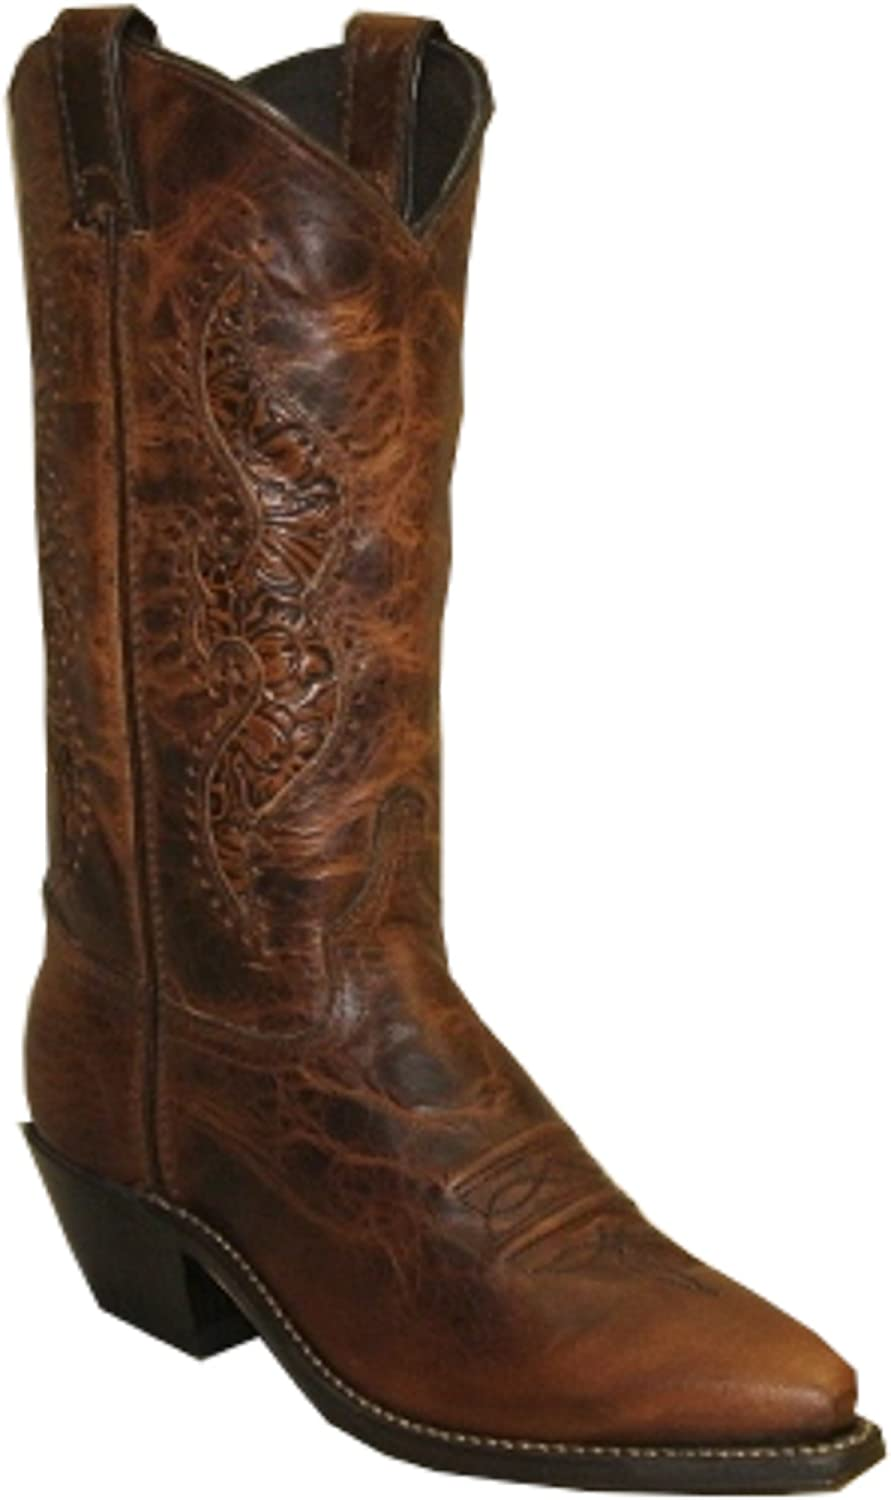 New color Abilene Women's Hand Tooled Inlay Snip Brand new Boot Cowgirl Toe